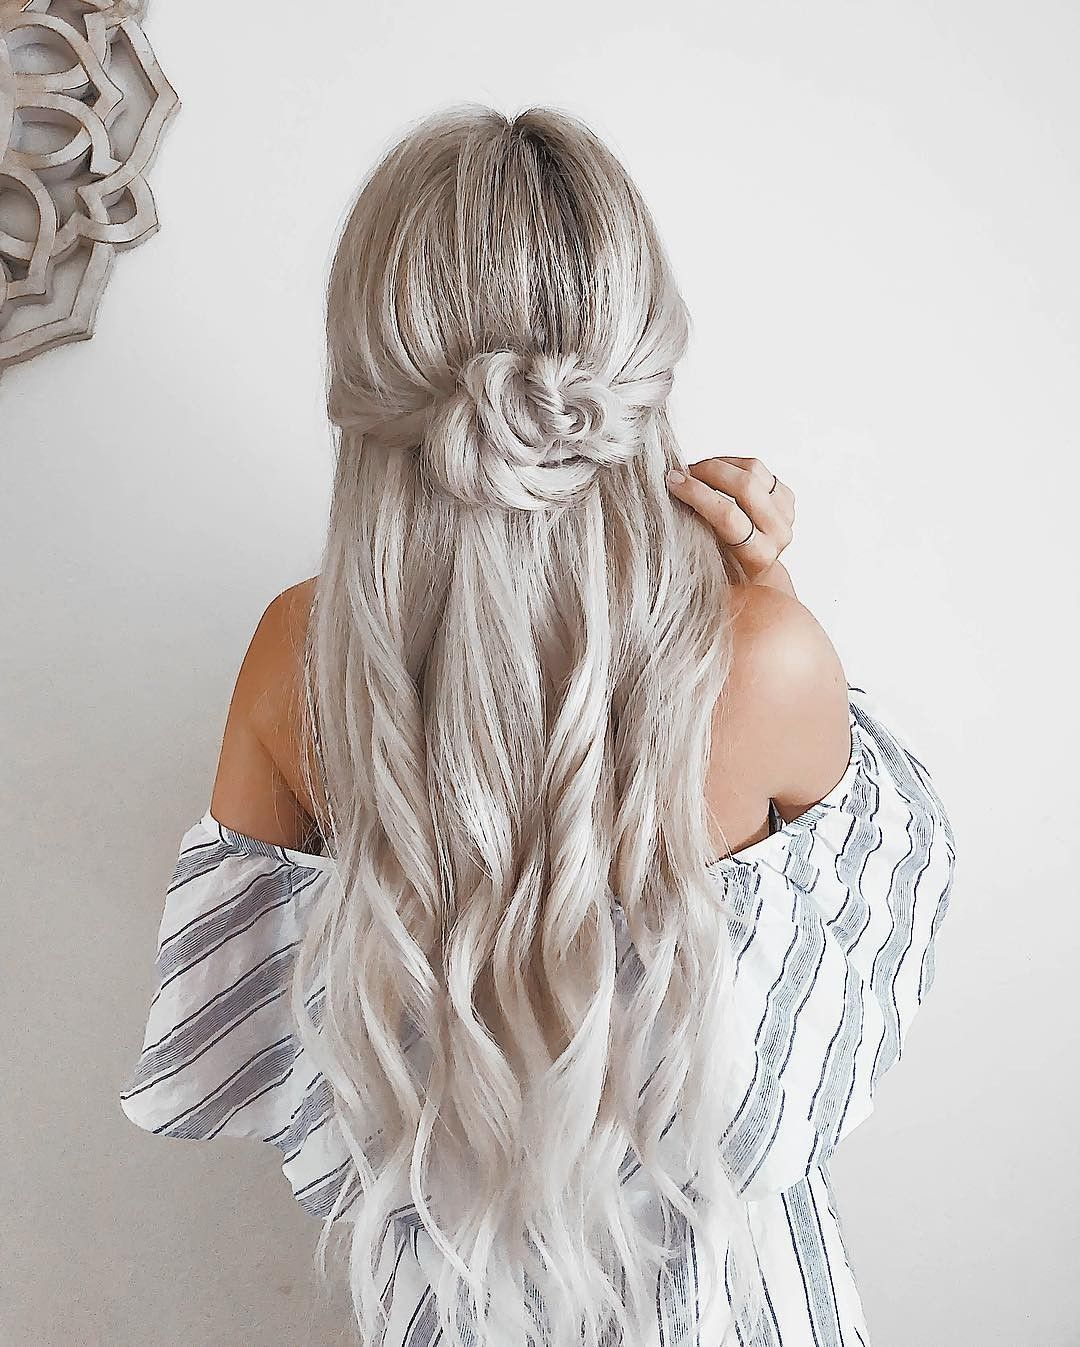 Like what you see? Follow me for more: @uhairofficial #WeddingHairFlowers